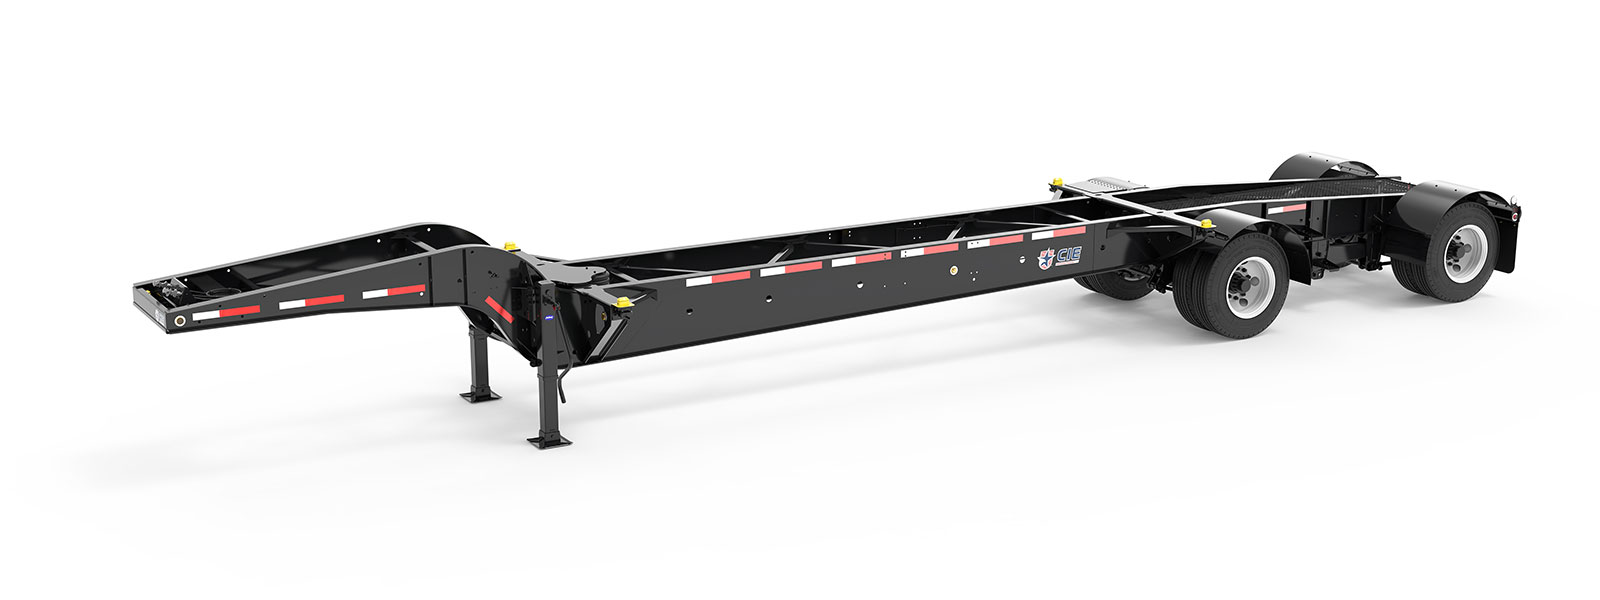 43' Drop Frame Tandem Tank Container Chassis Angle View Final